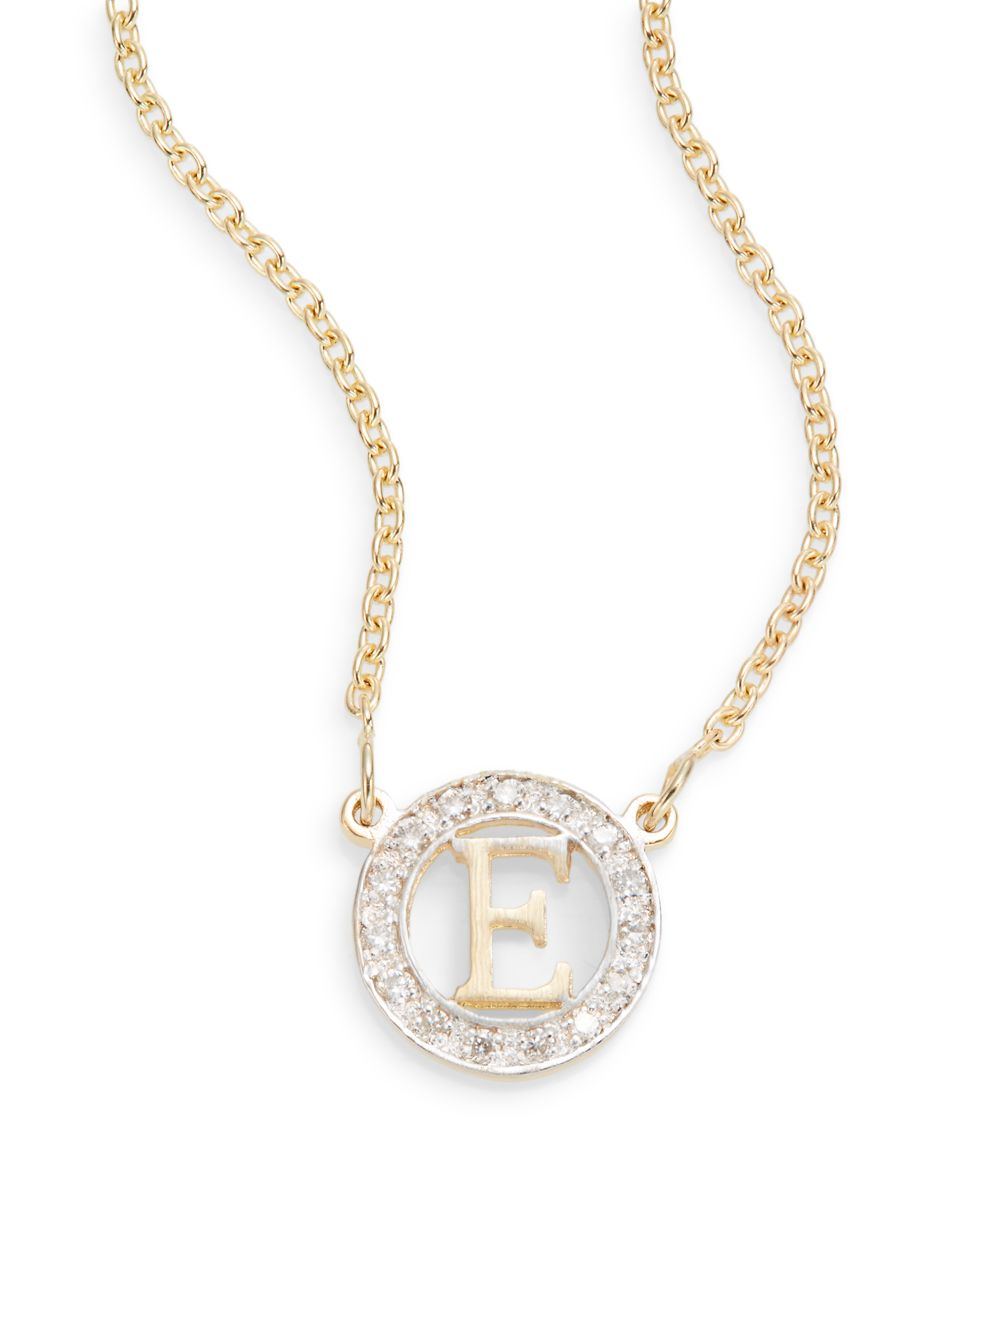 Lyst kacey k diamond 14k gold e small initial necklace in metallic gallery mozeypictures Image collections